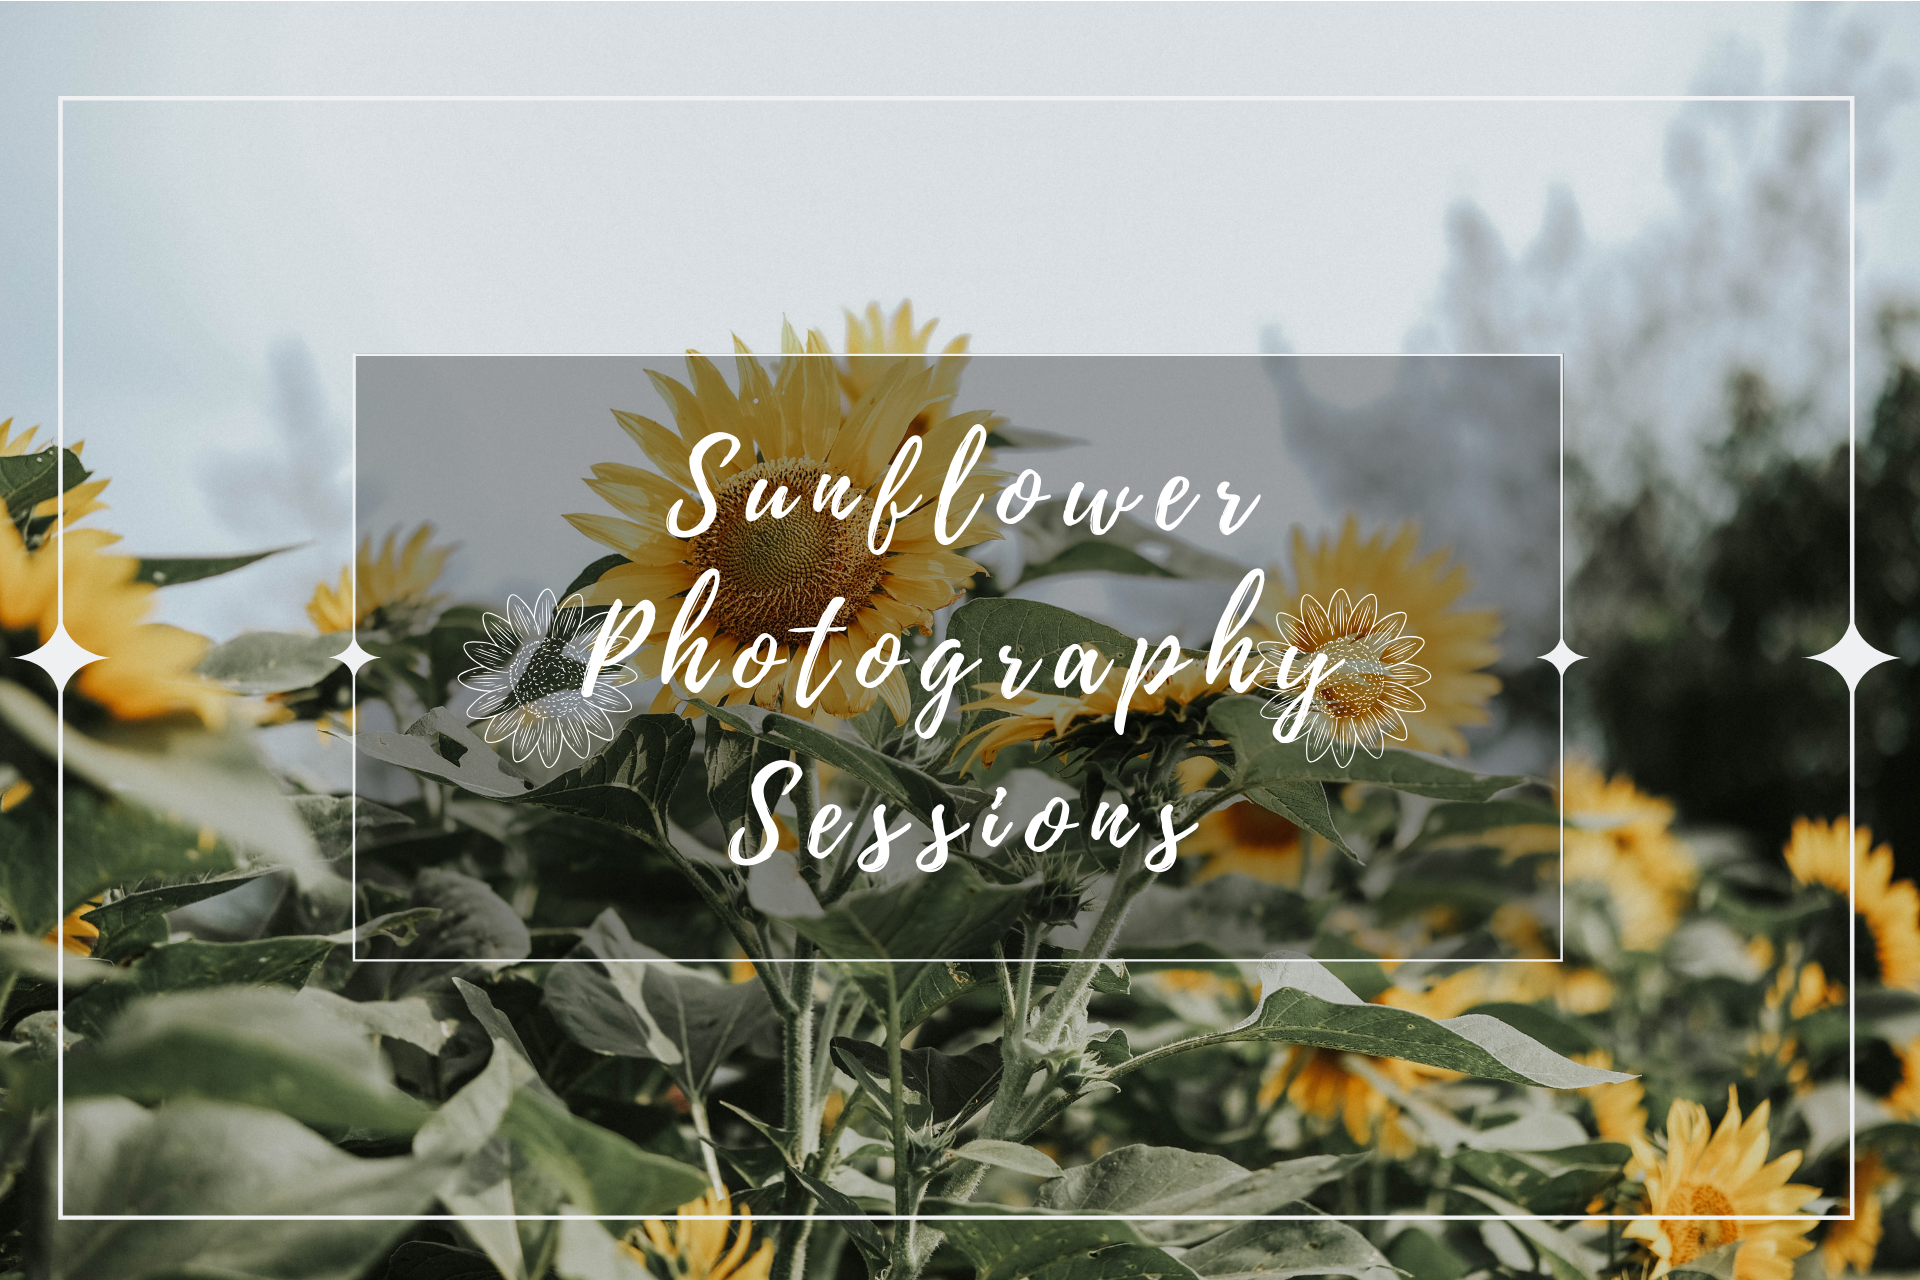 DRP Sunflower Photography Session Promo 3.0.png